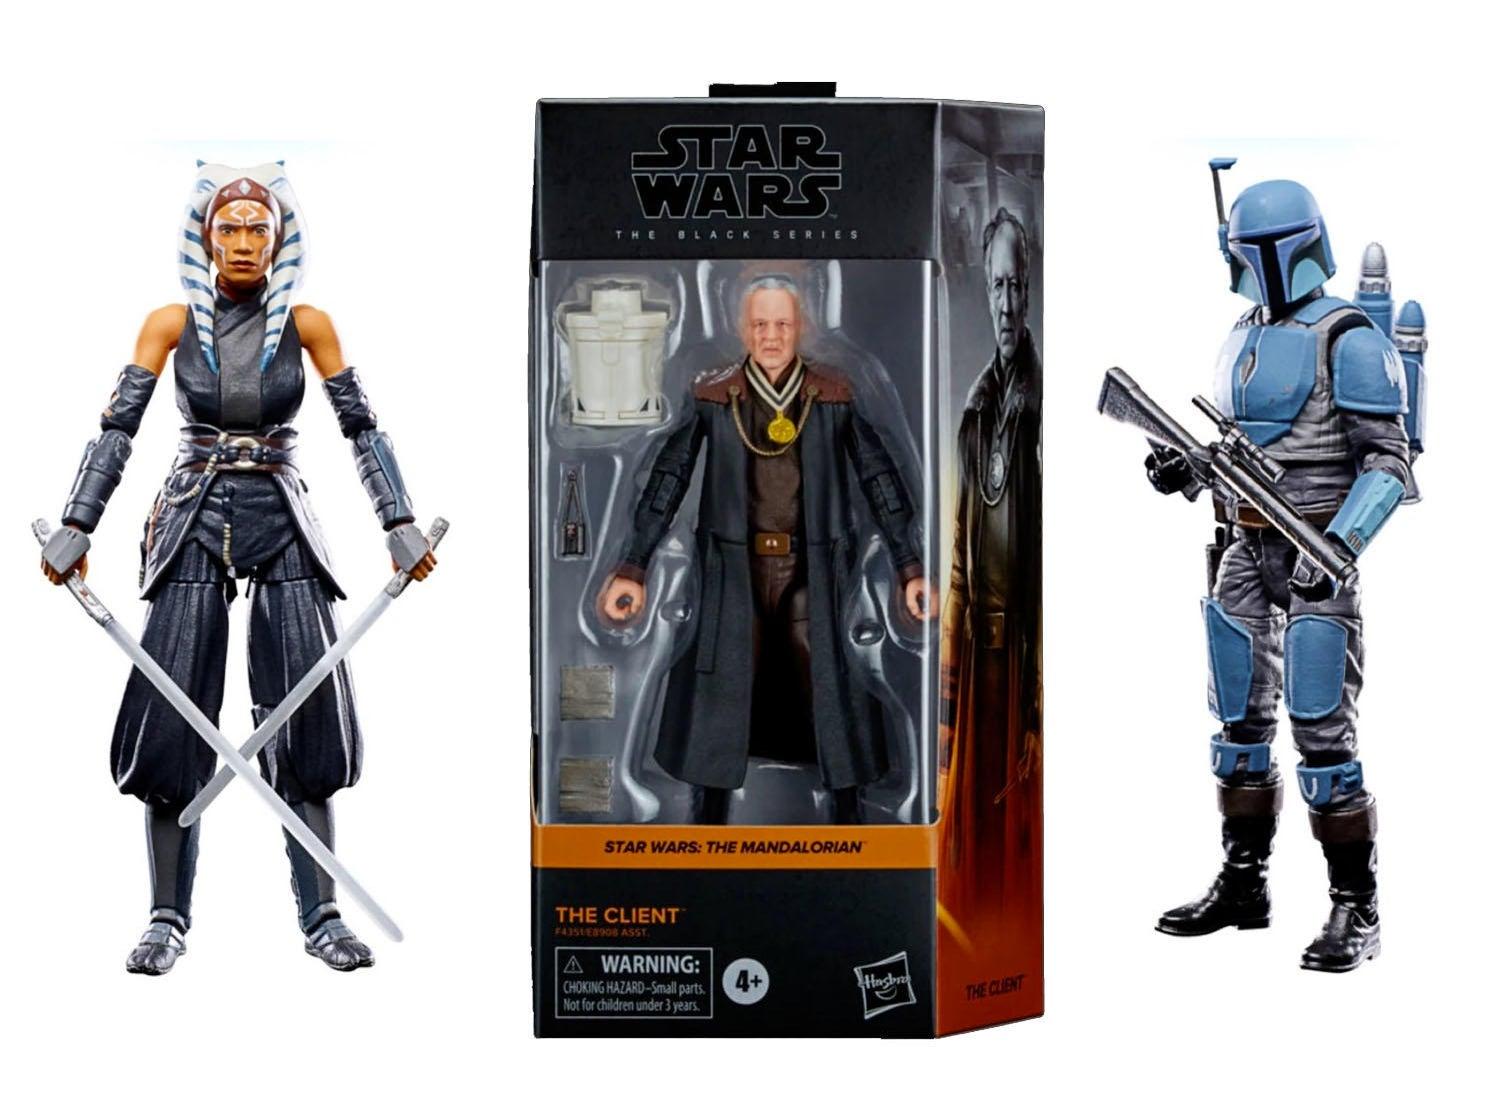 Star Wars Vintage Collection Ahsoka Tano and Death Watch Mandalorian Pre-Orders Launch Today